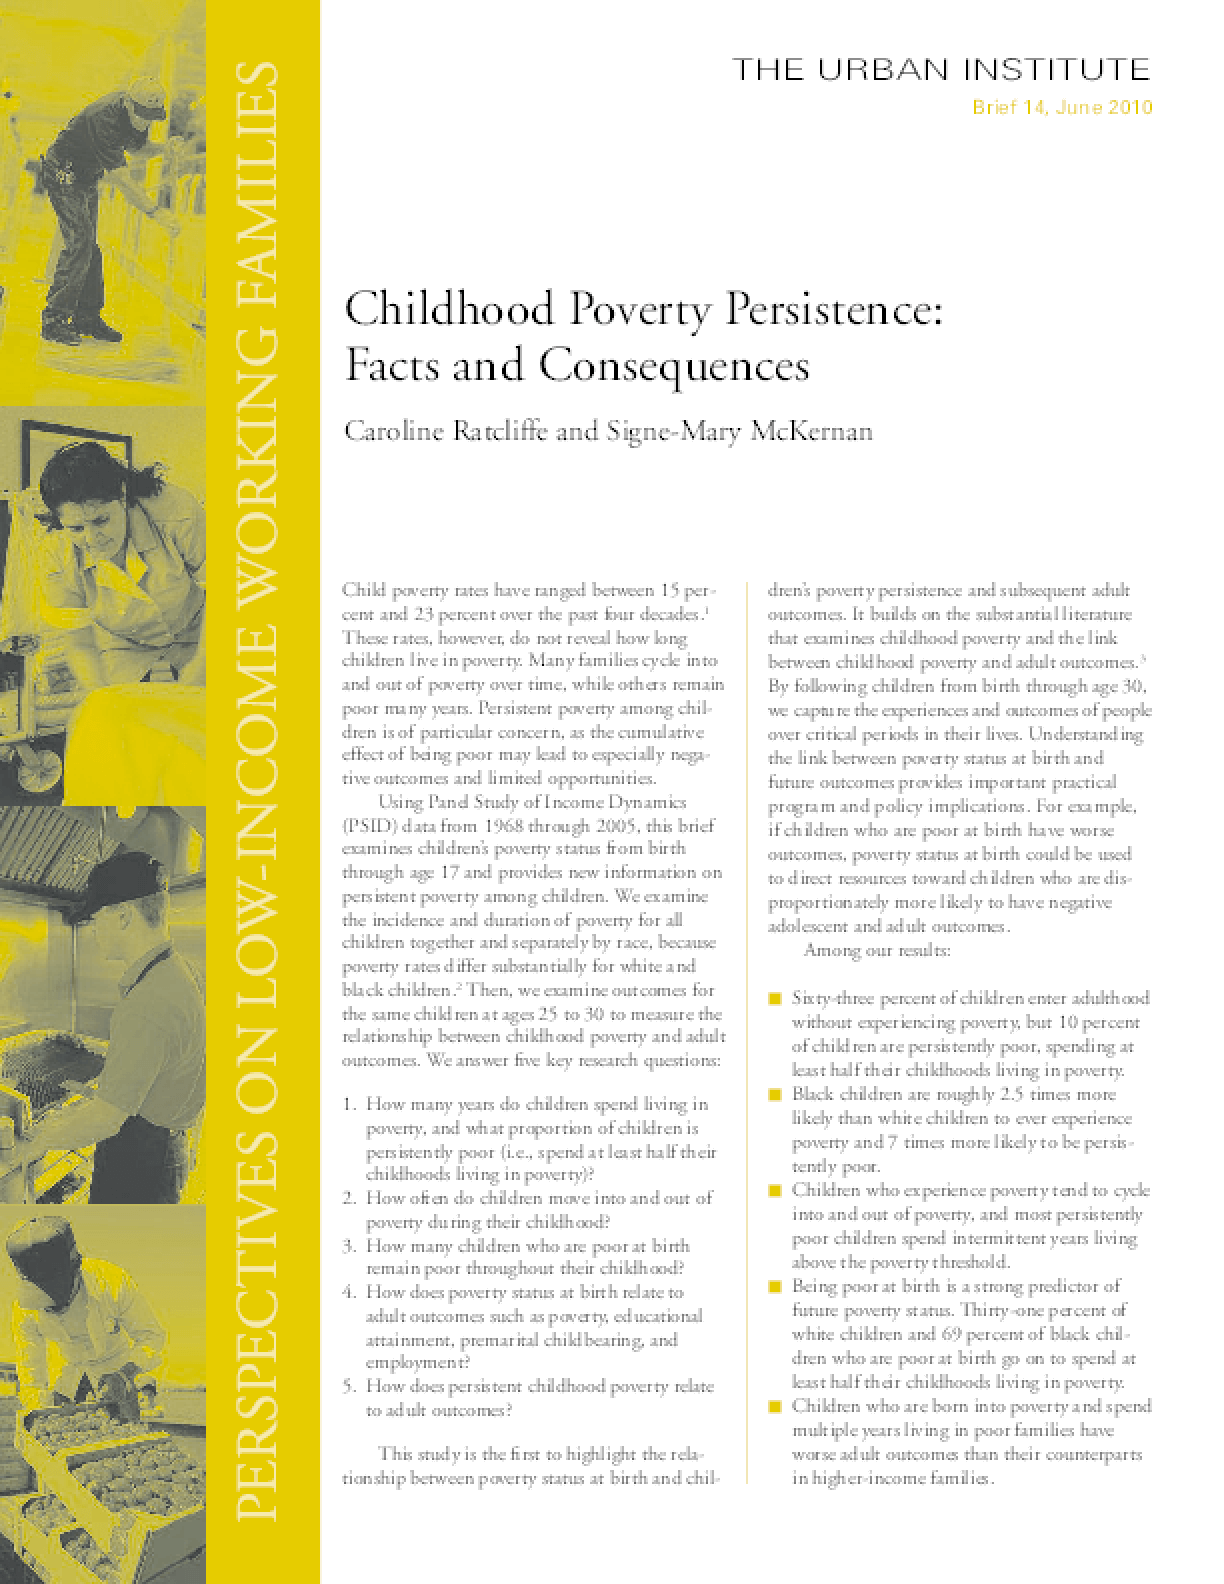 Childhood Poverty Persistence: Facts and Consequences